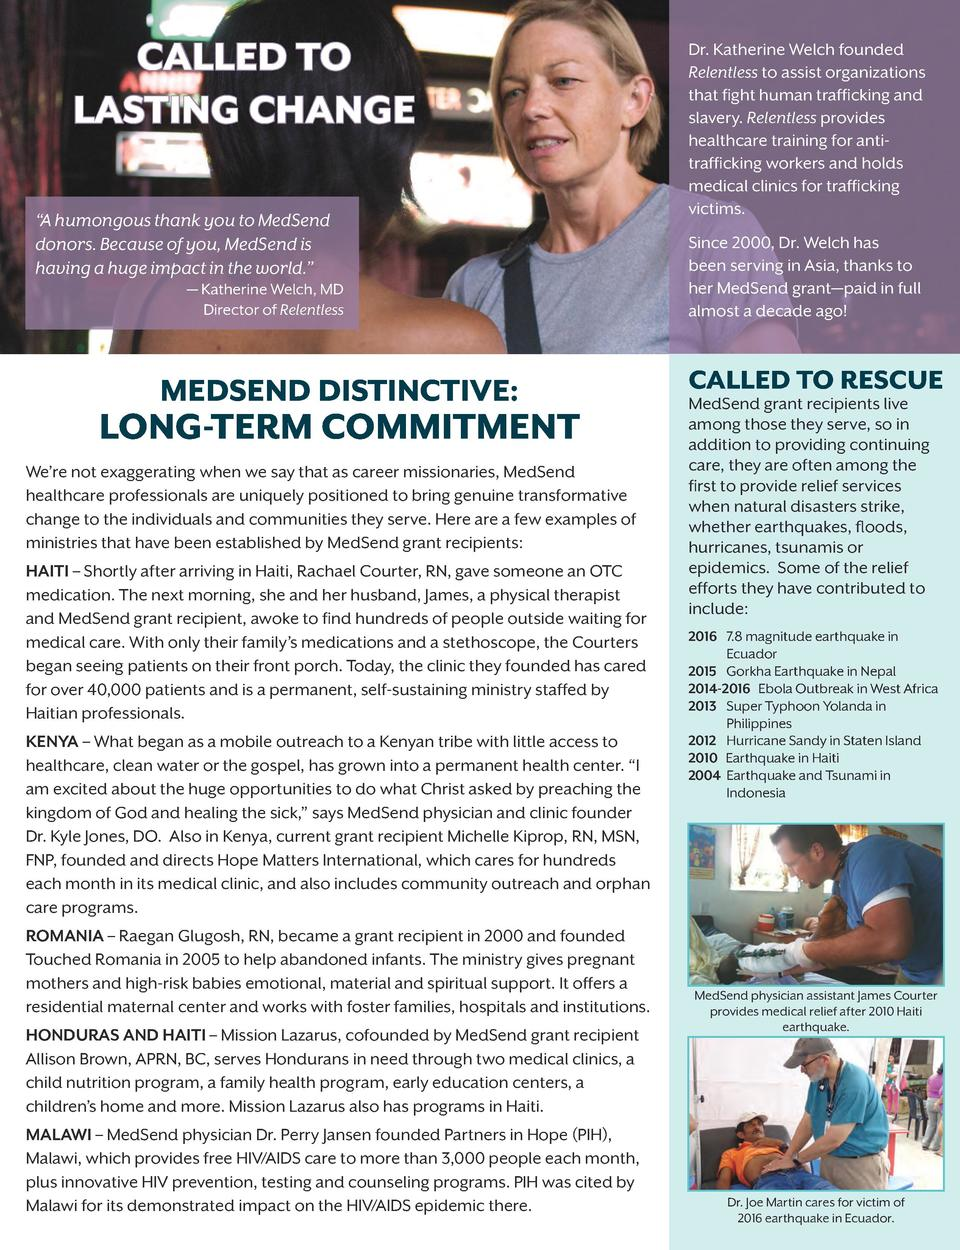 CALLED TO LASTING CHANGE    A humongous thank you to MedSend donors. Because of you, MedSend is having a huge impact in th...